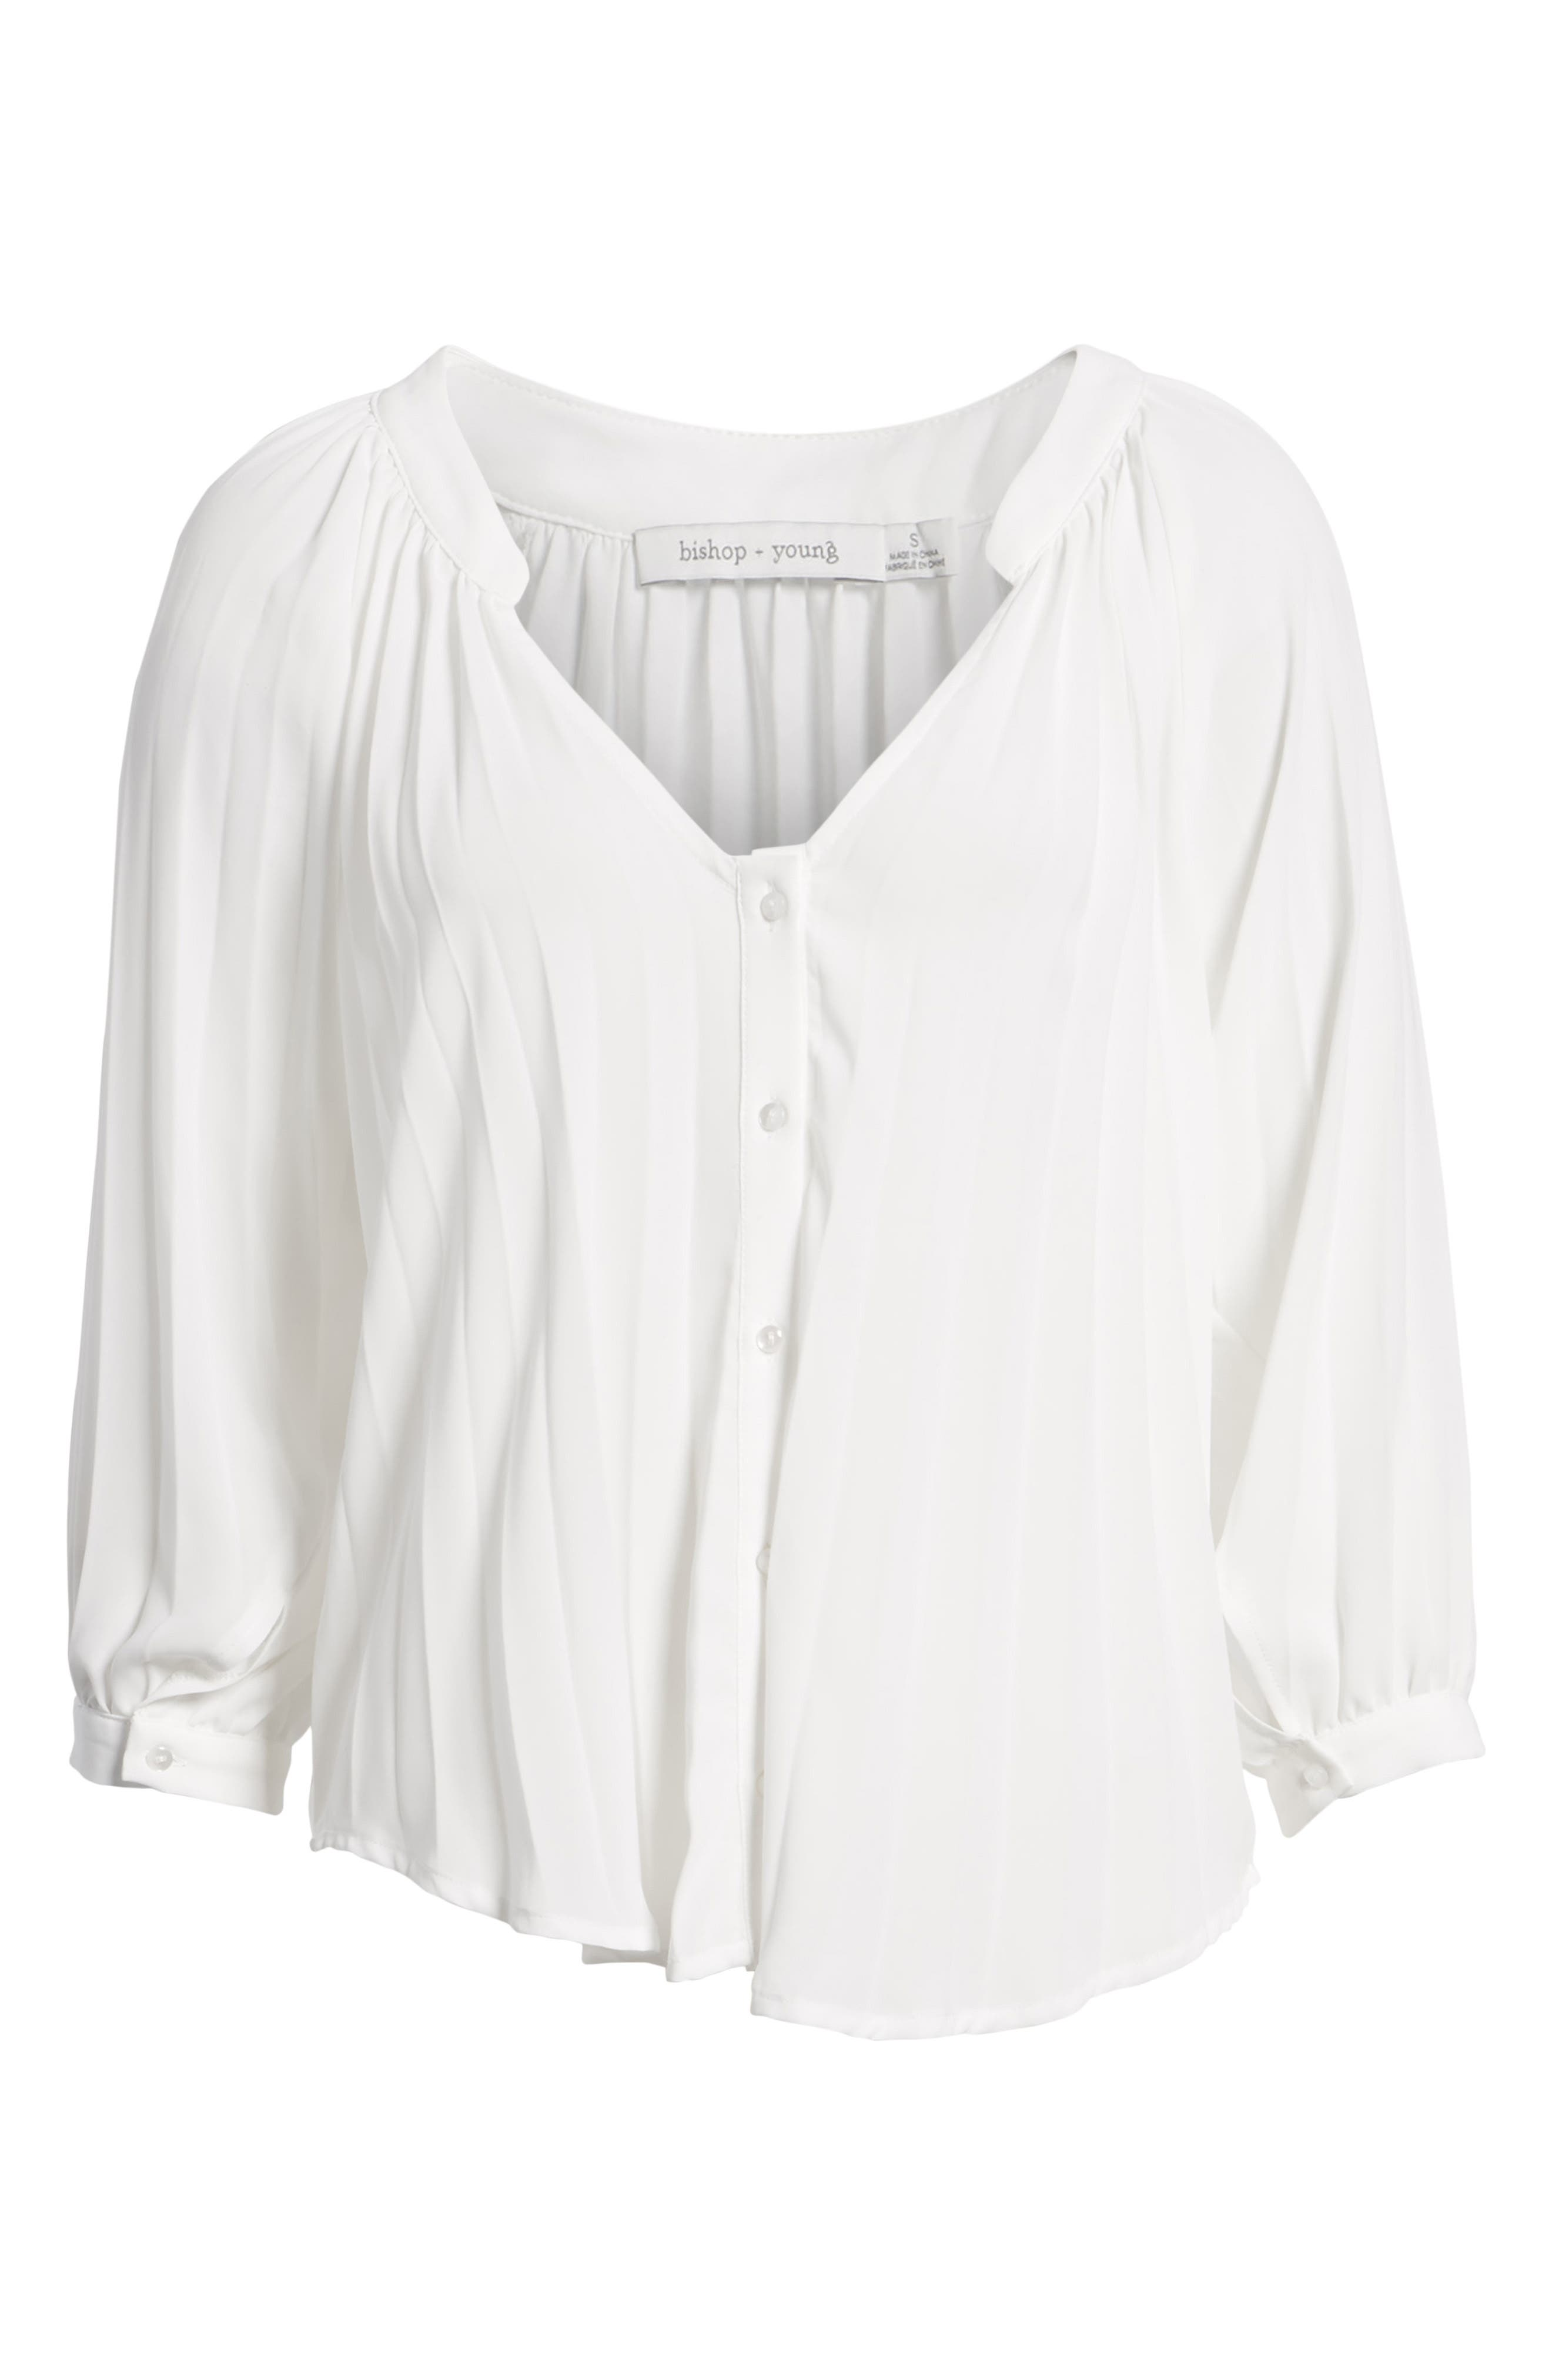 Bishop + Young Pleated Top,                             Alternate thumbnail 7, color,                             WHITE